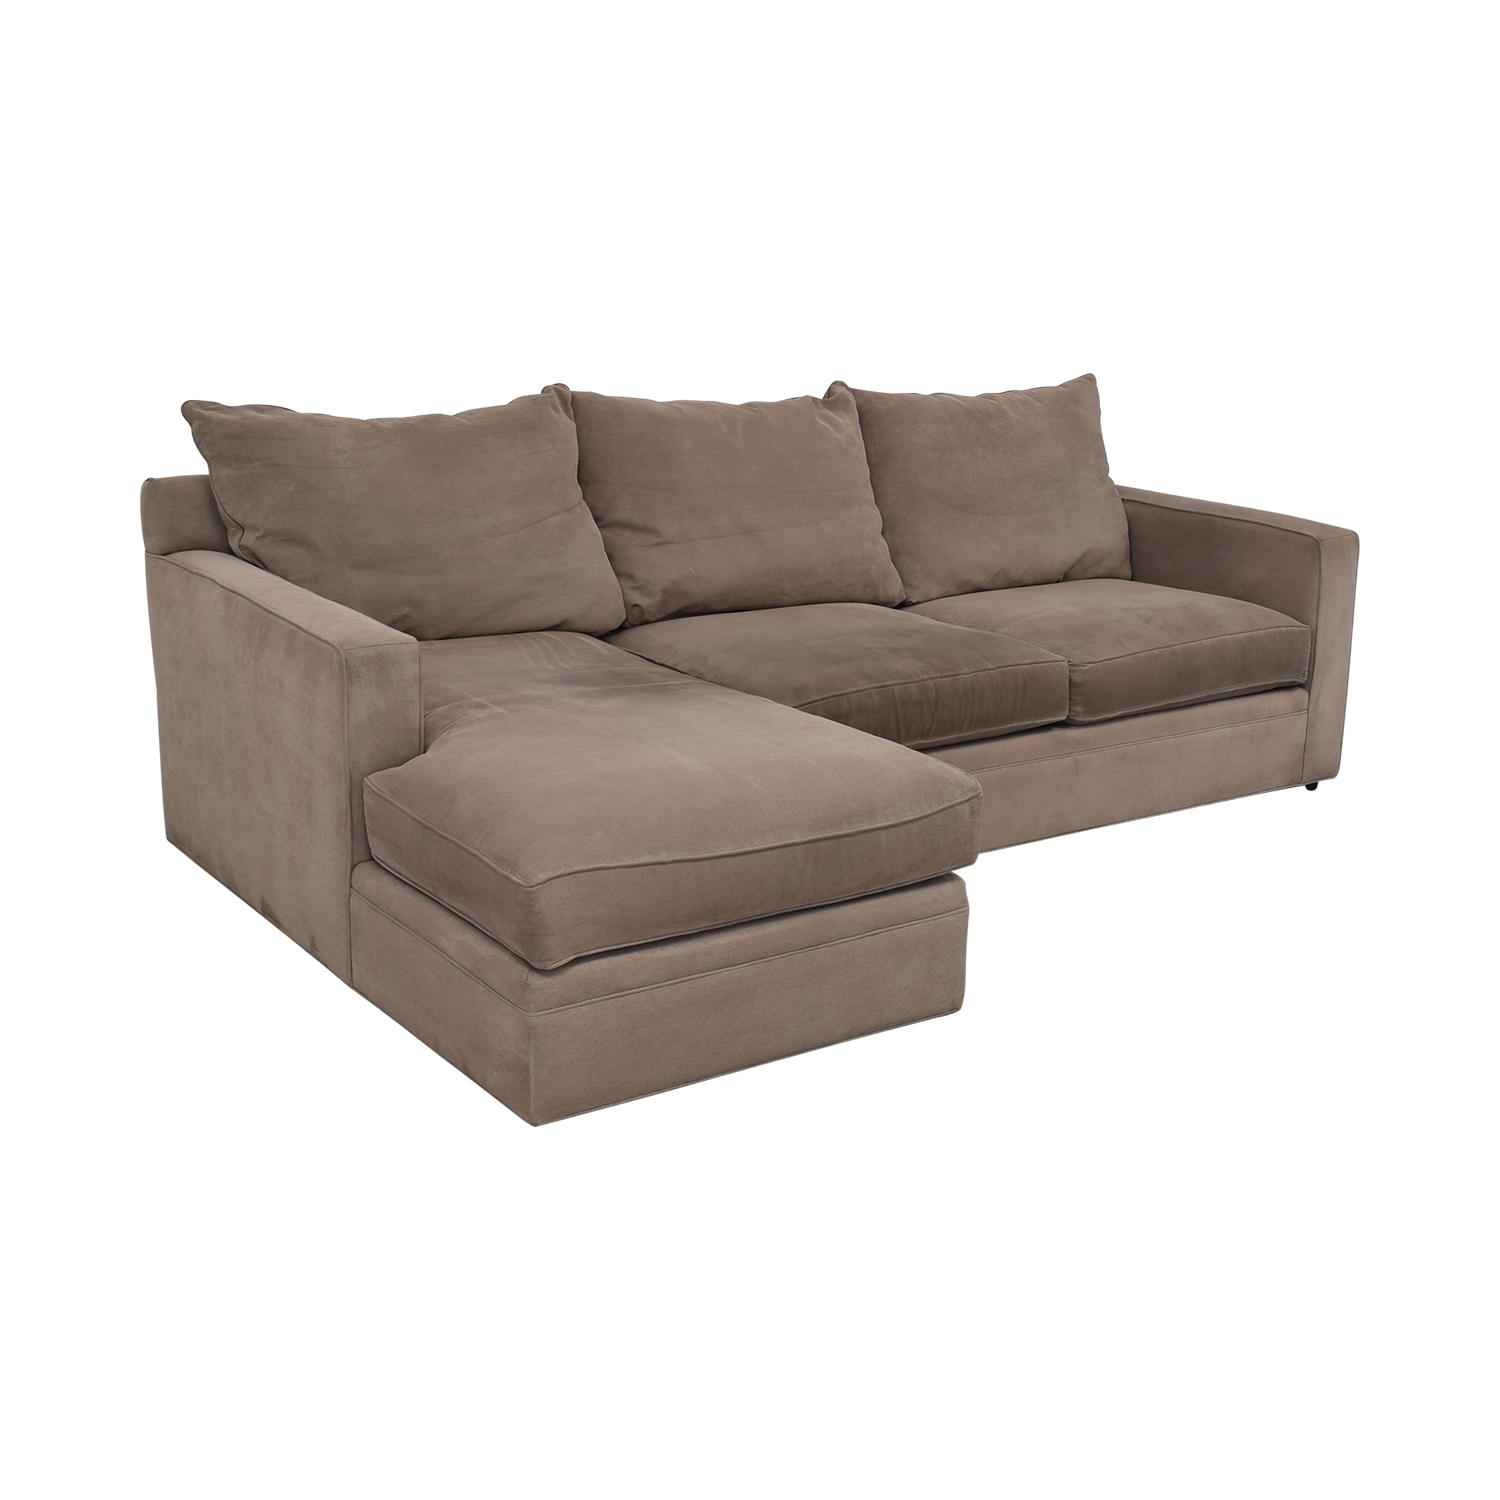 shop Room & Board Orson Sectional Couch Room & Board Sofas